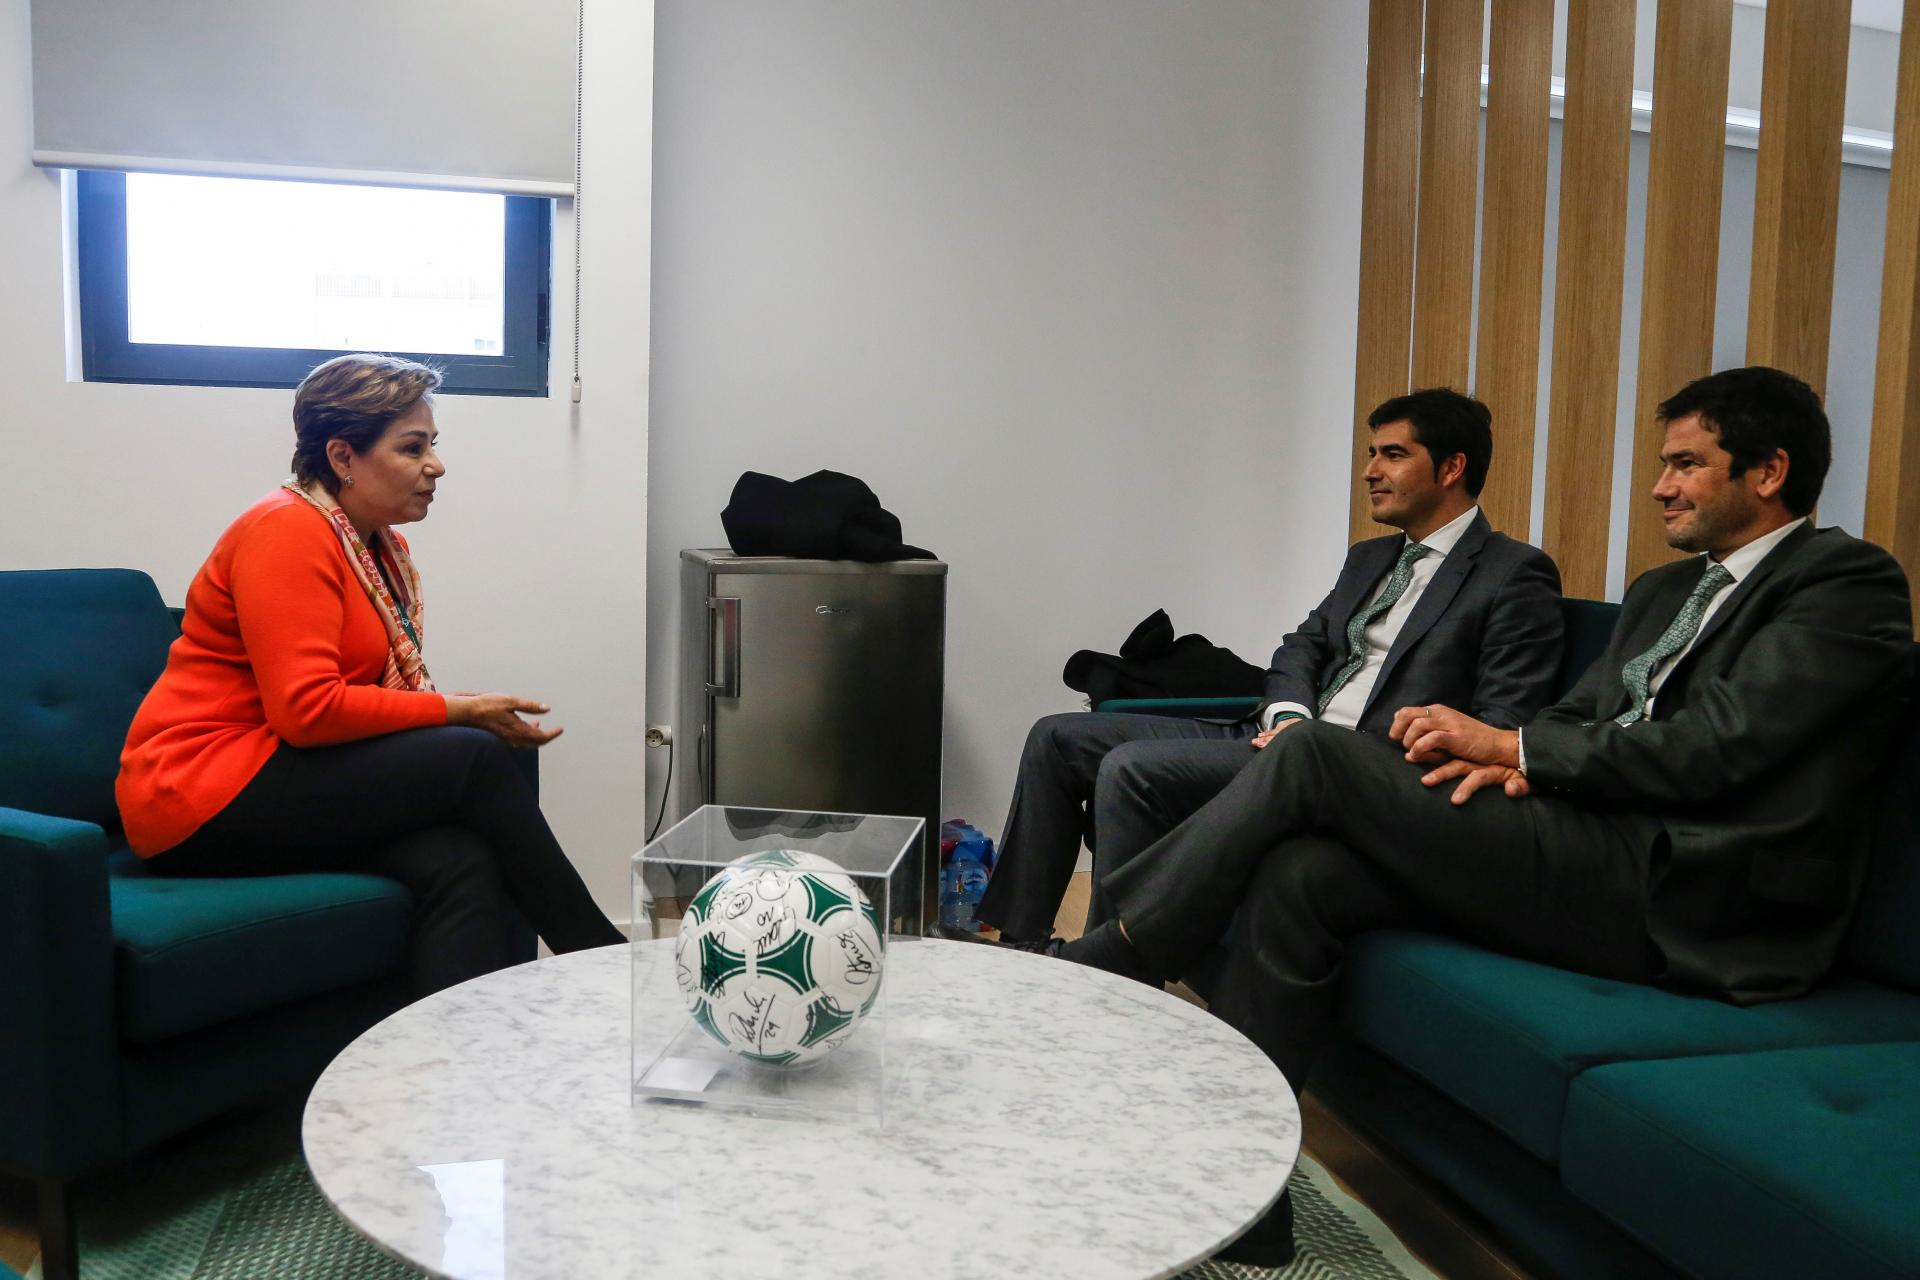 Real Betis Balompié in discussion with Patricia Espinosa UNFCCC Executive Secretary